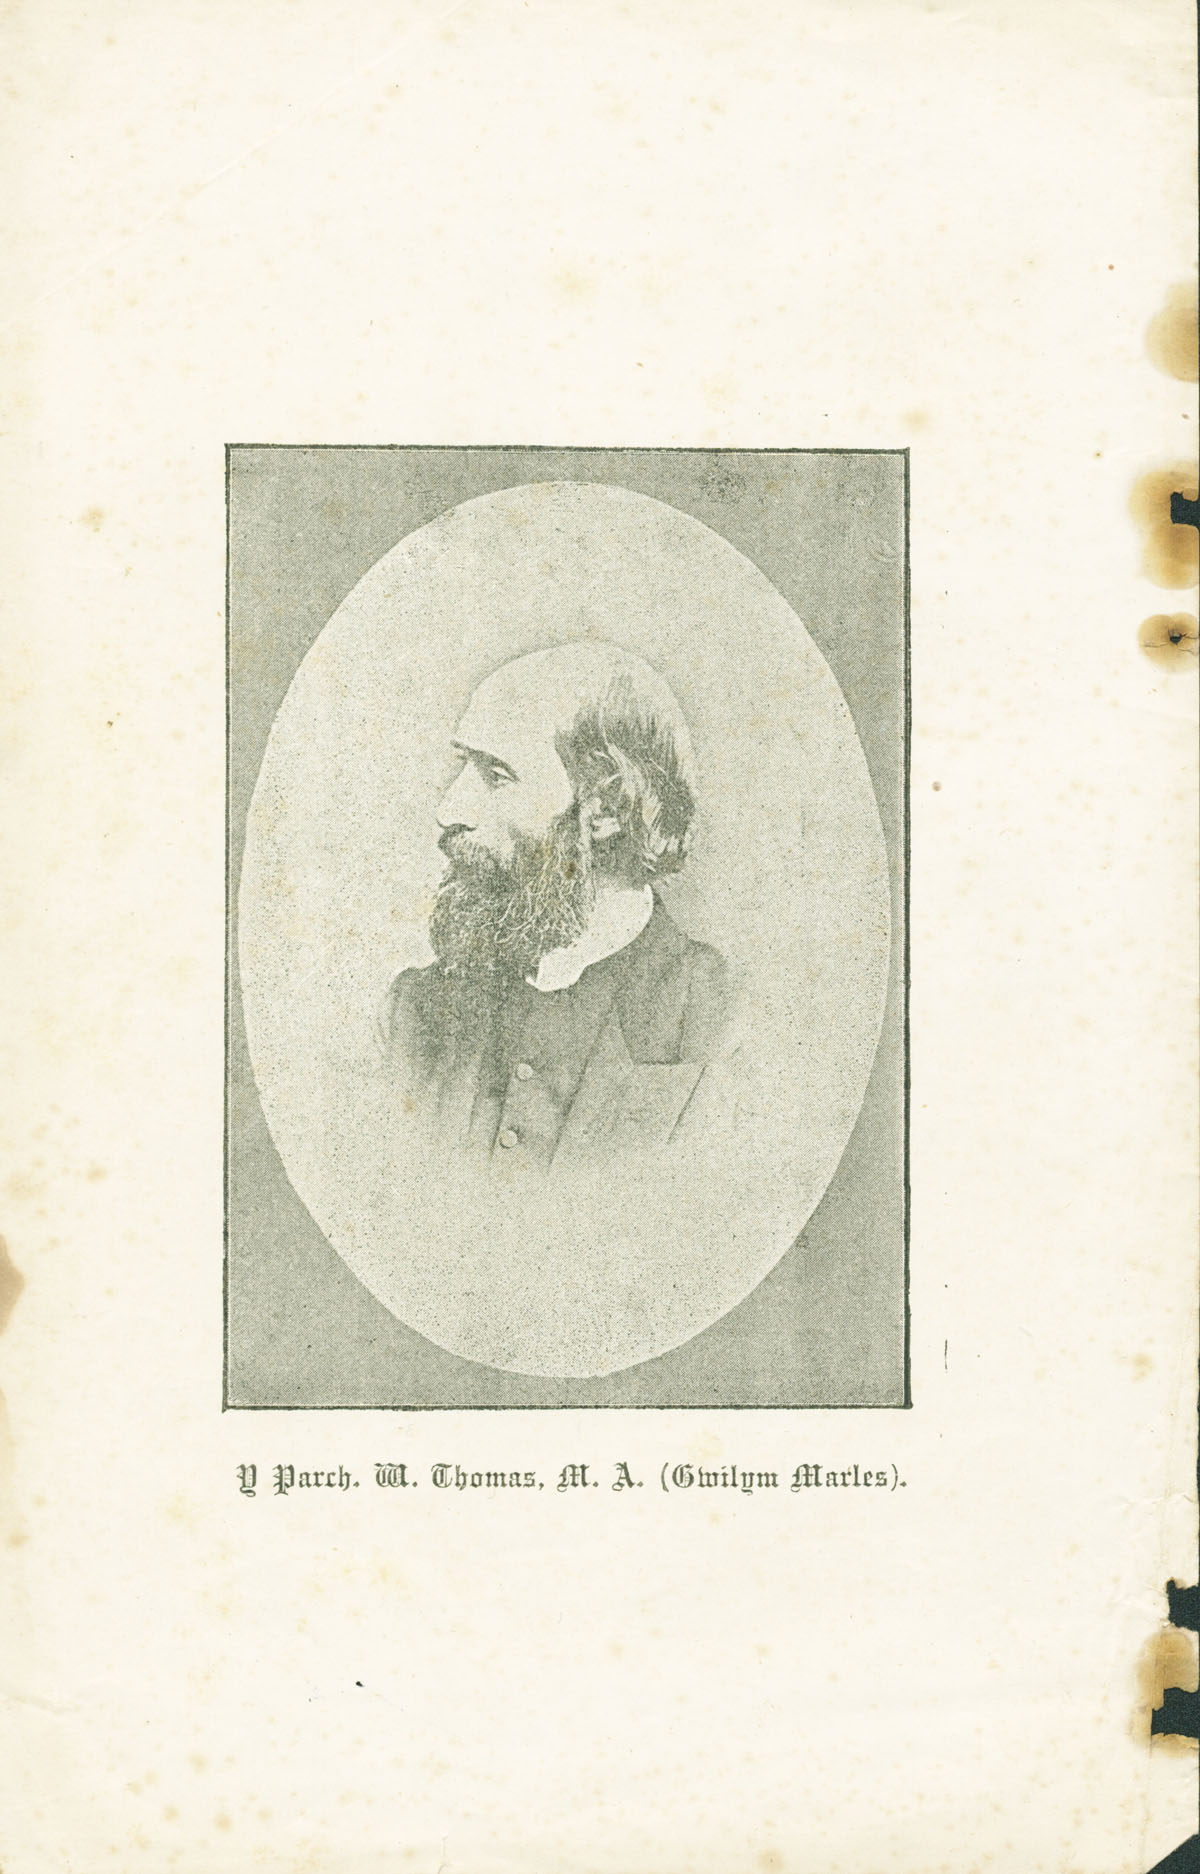 Image of Rev. William Thomas (commonly known by his bardic name Gwilym Marles).